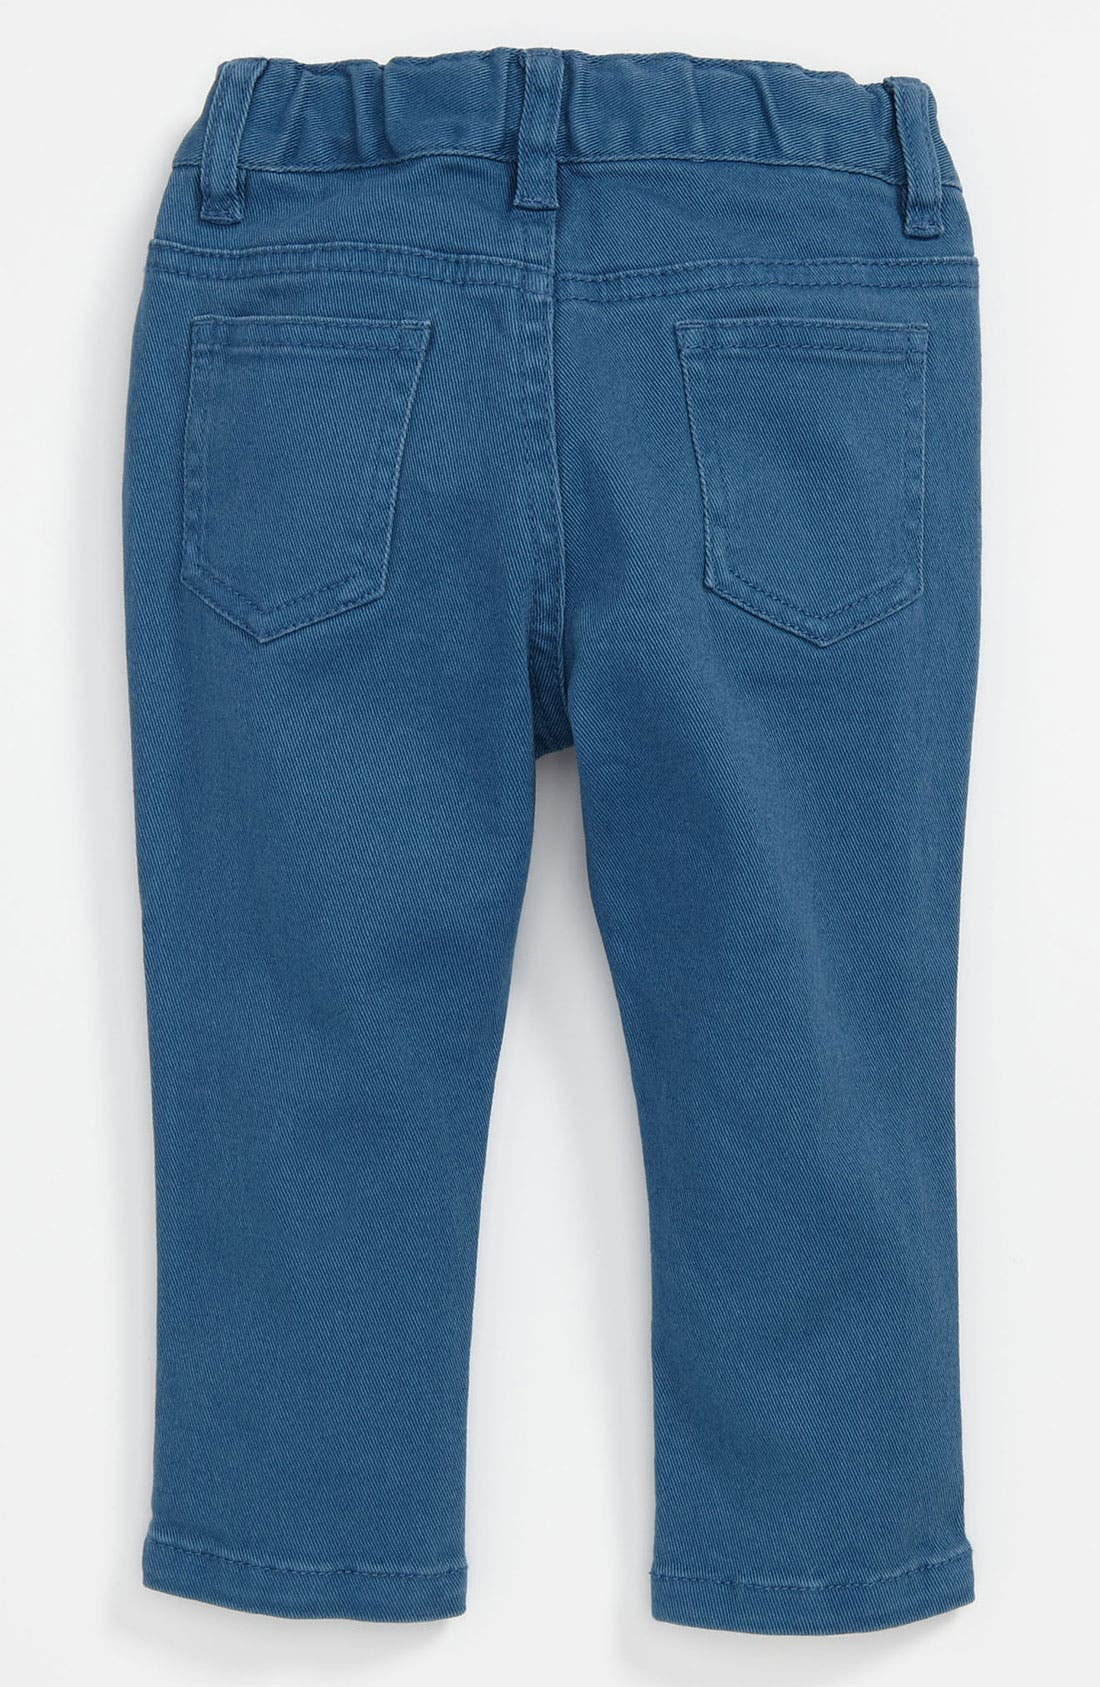 Alternate Image 1 Selected - Pumpkin Patch 'Skinny' Color Jeans (Infant)